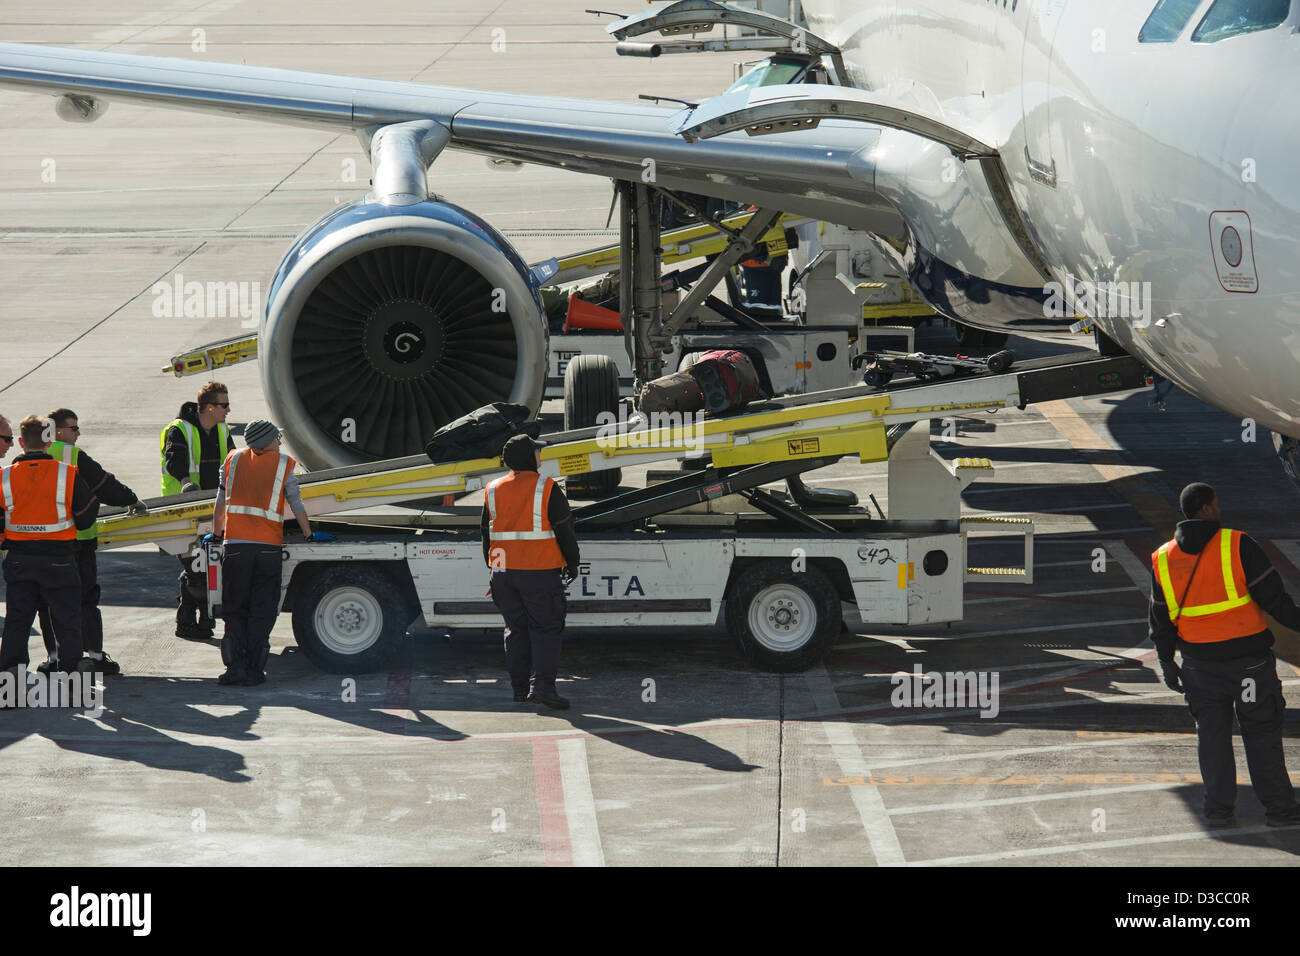 Denver Colorado The Ground Crew Unloads Luggage From A Delta